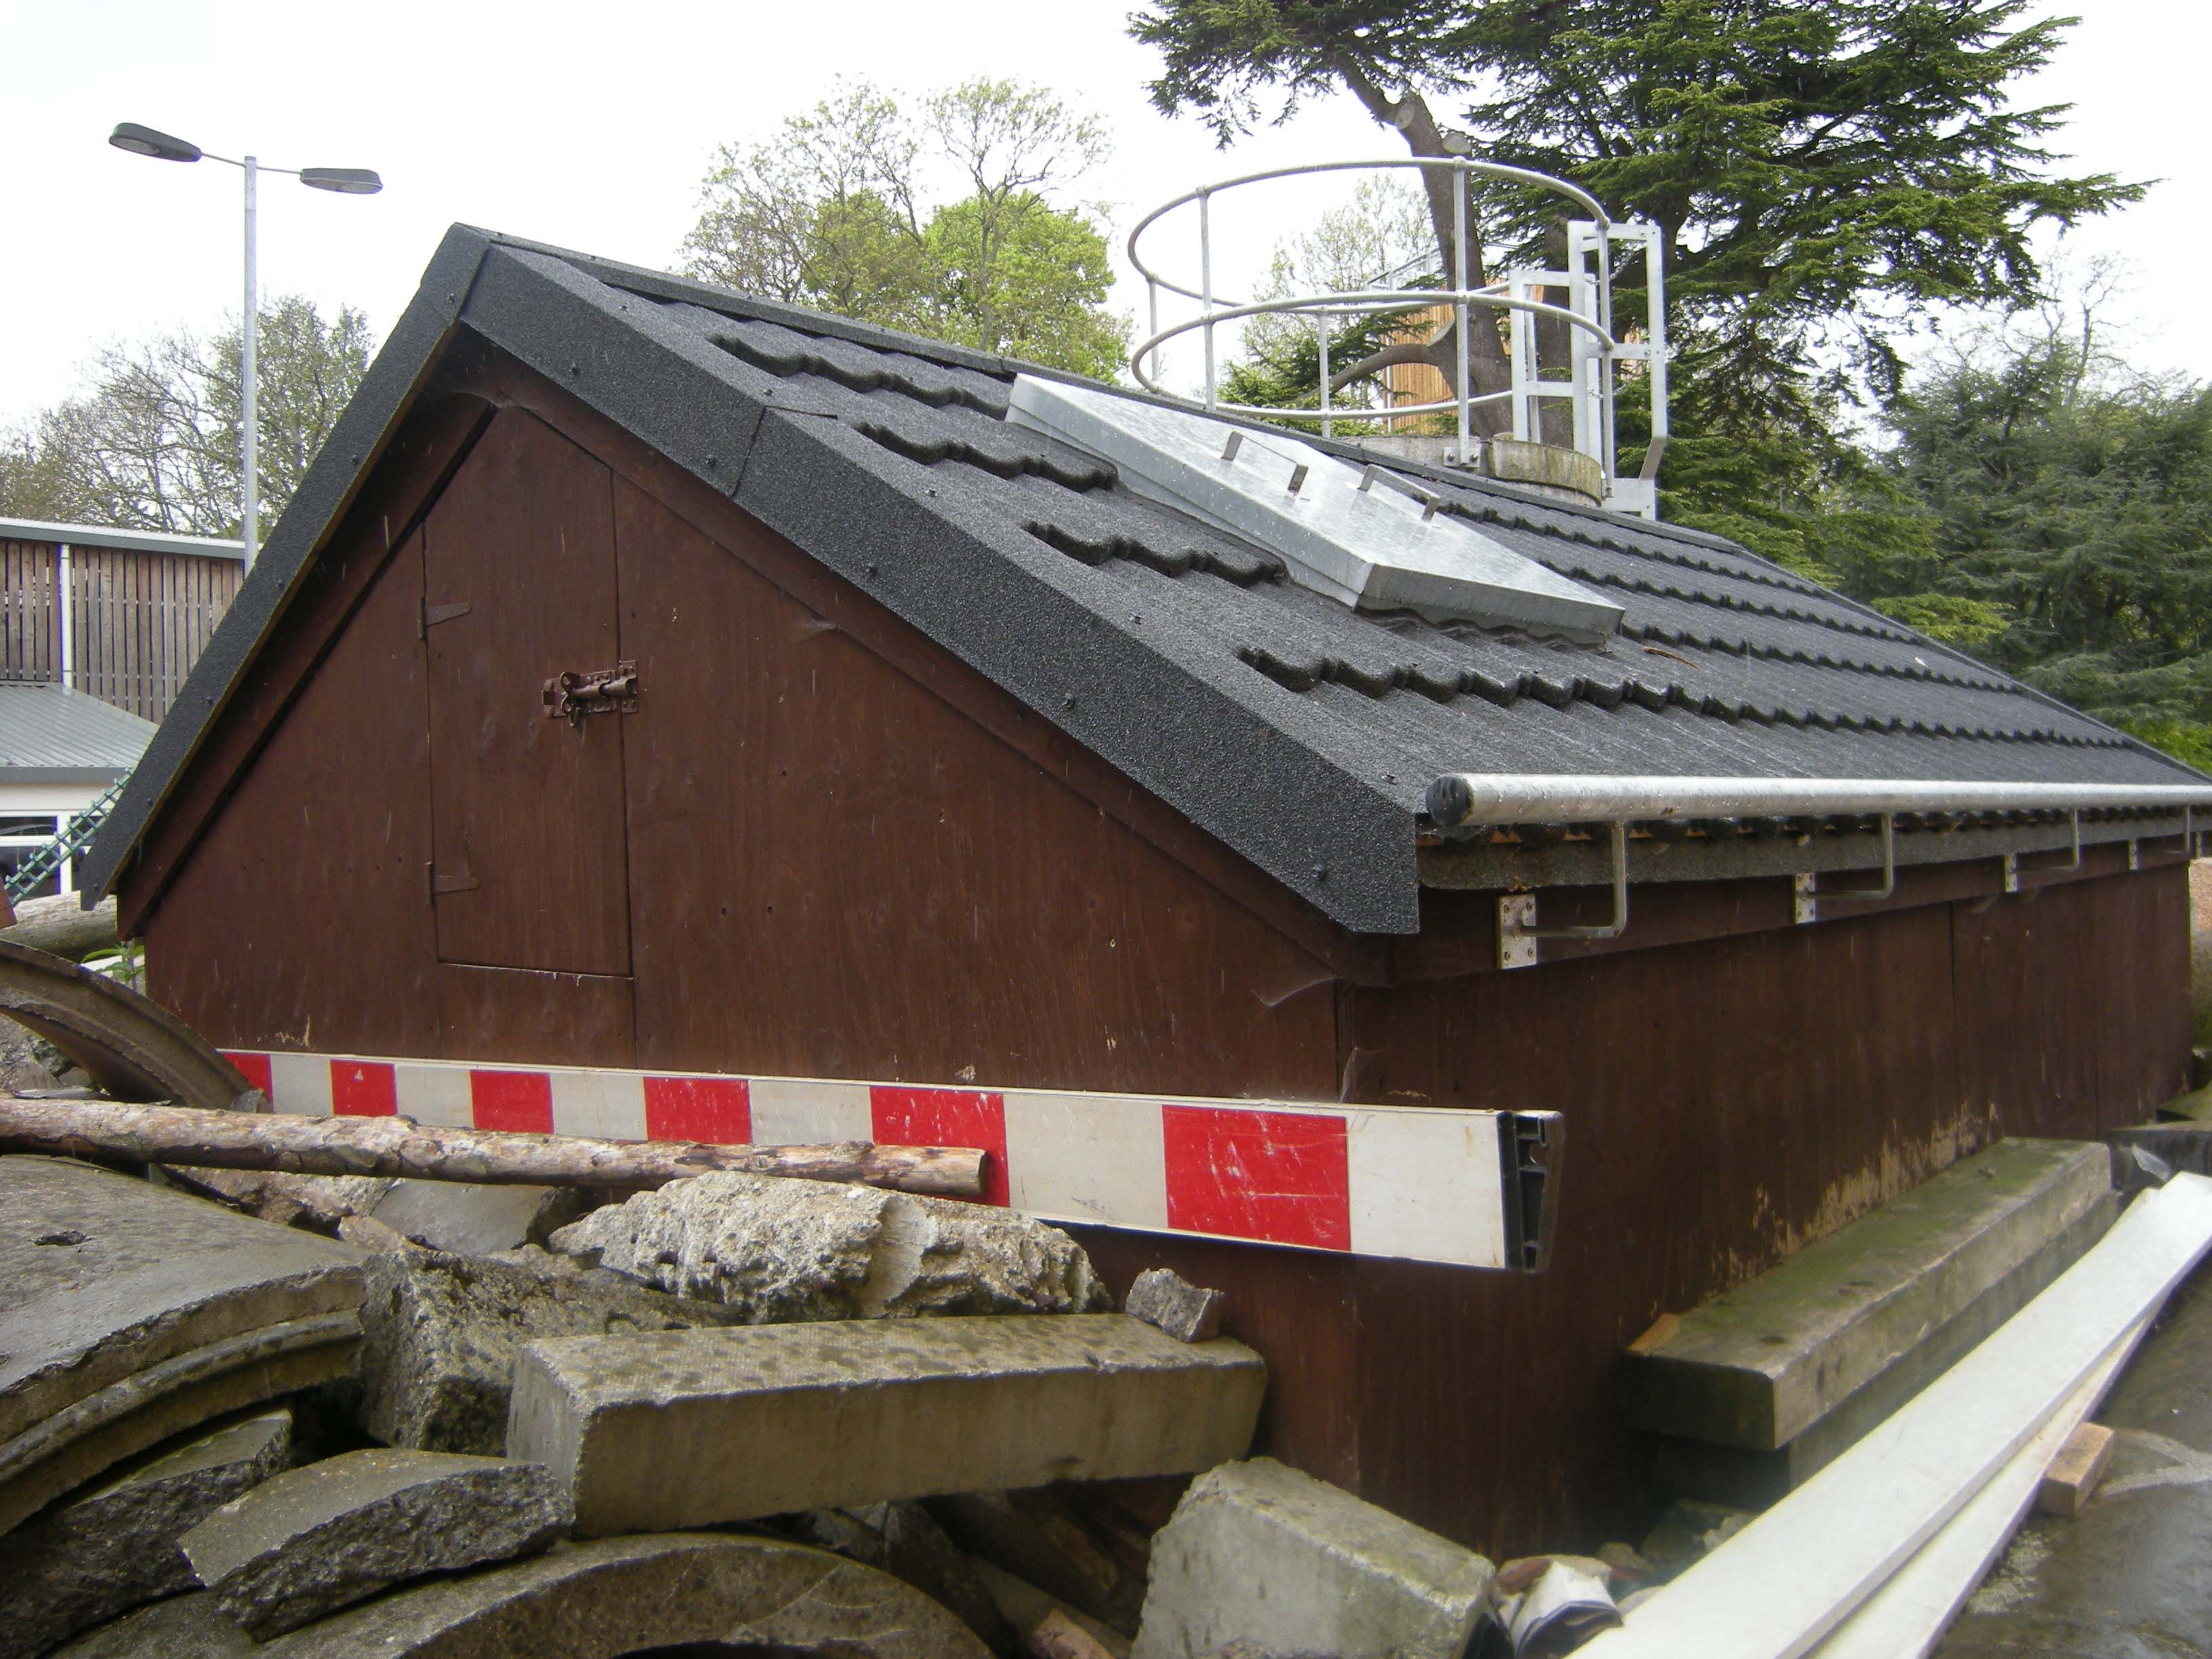 Fire station training roof lightweight steel roofing metrotile bond charcoal